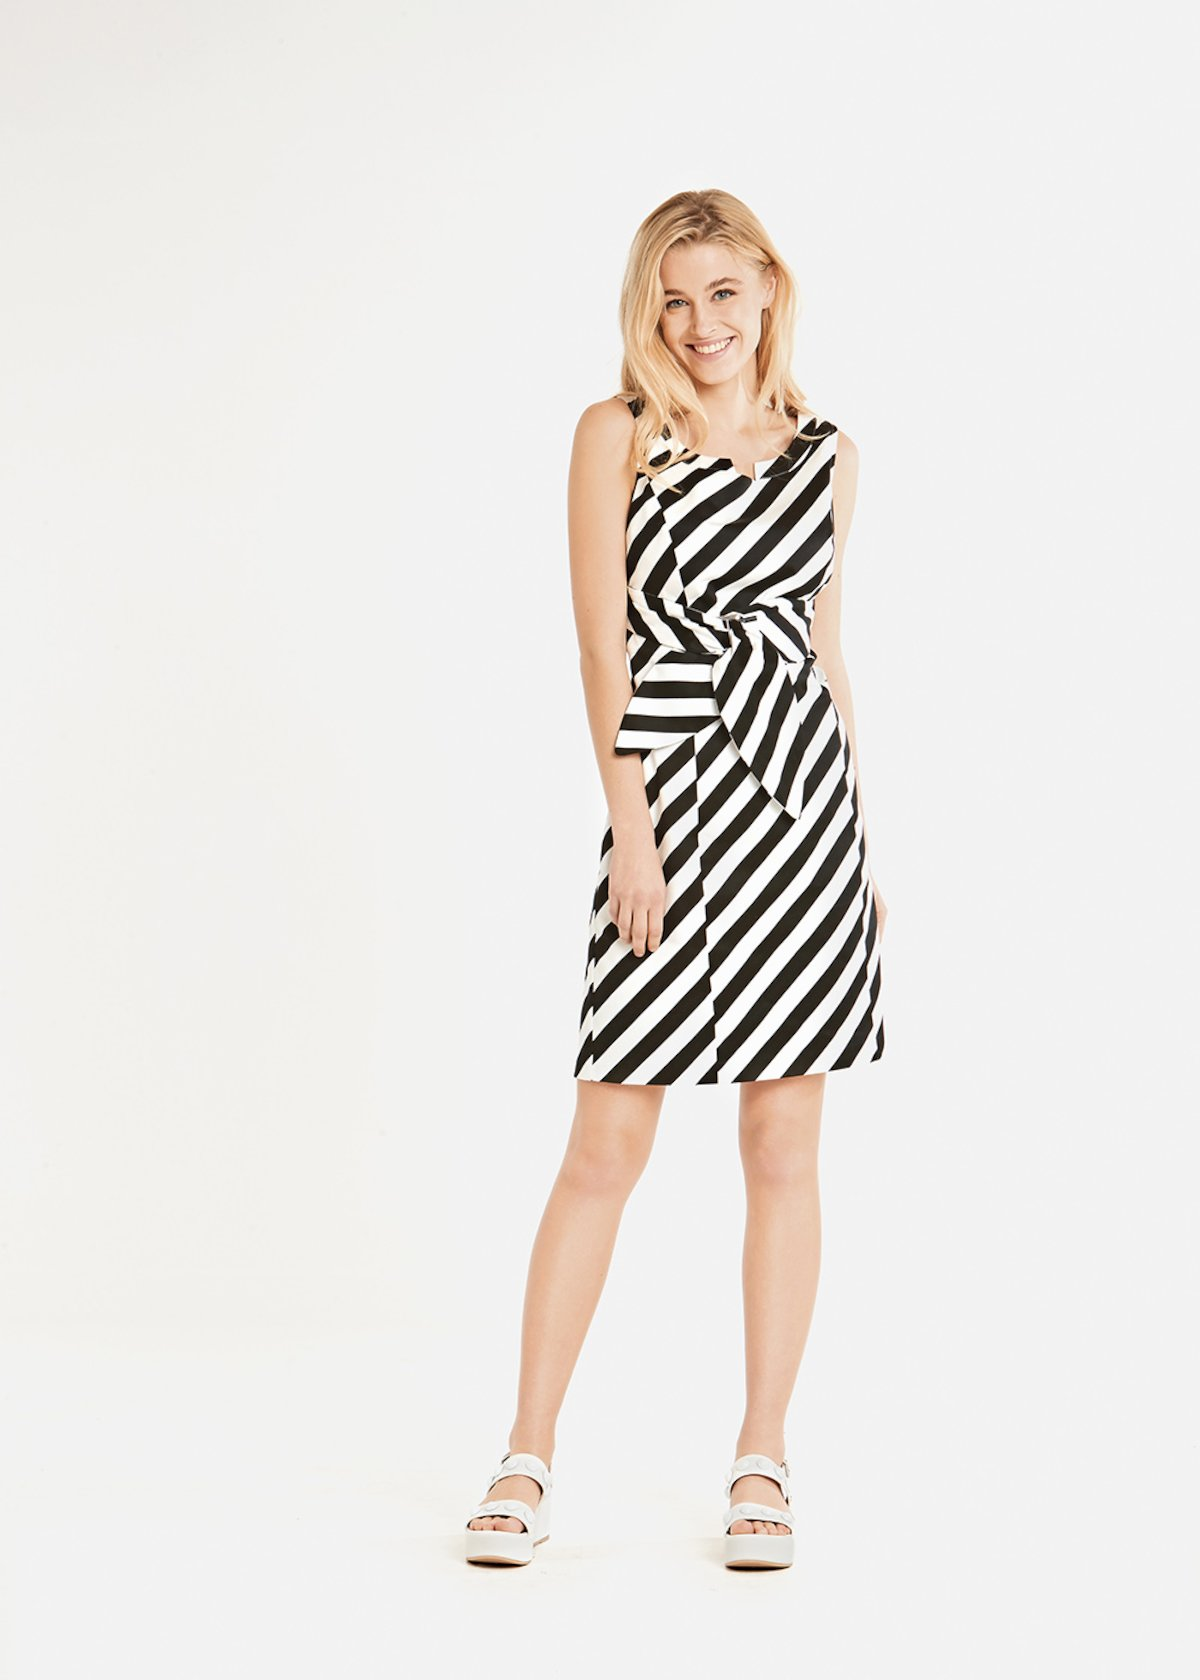 Audrey stripes fantacy dress with belt effect